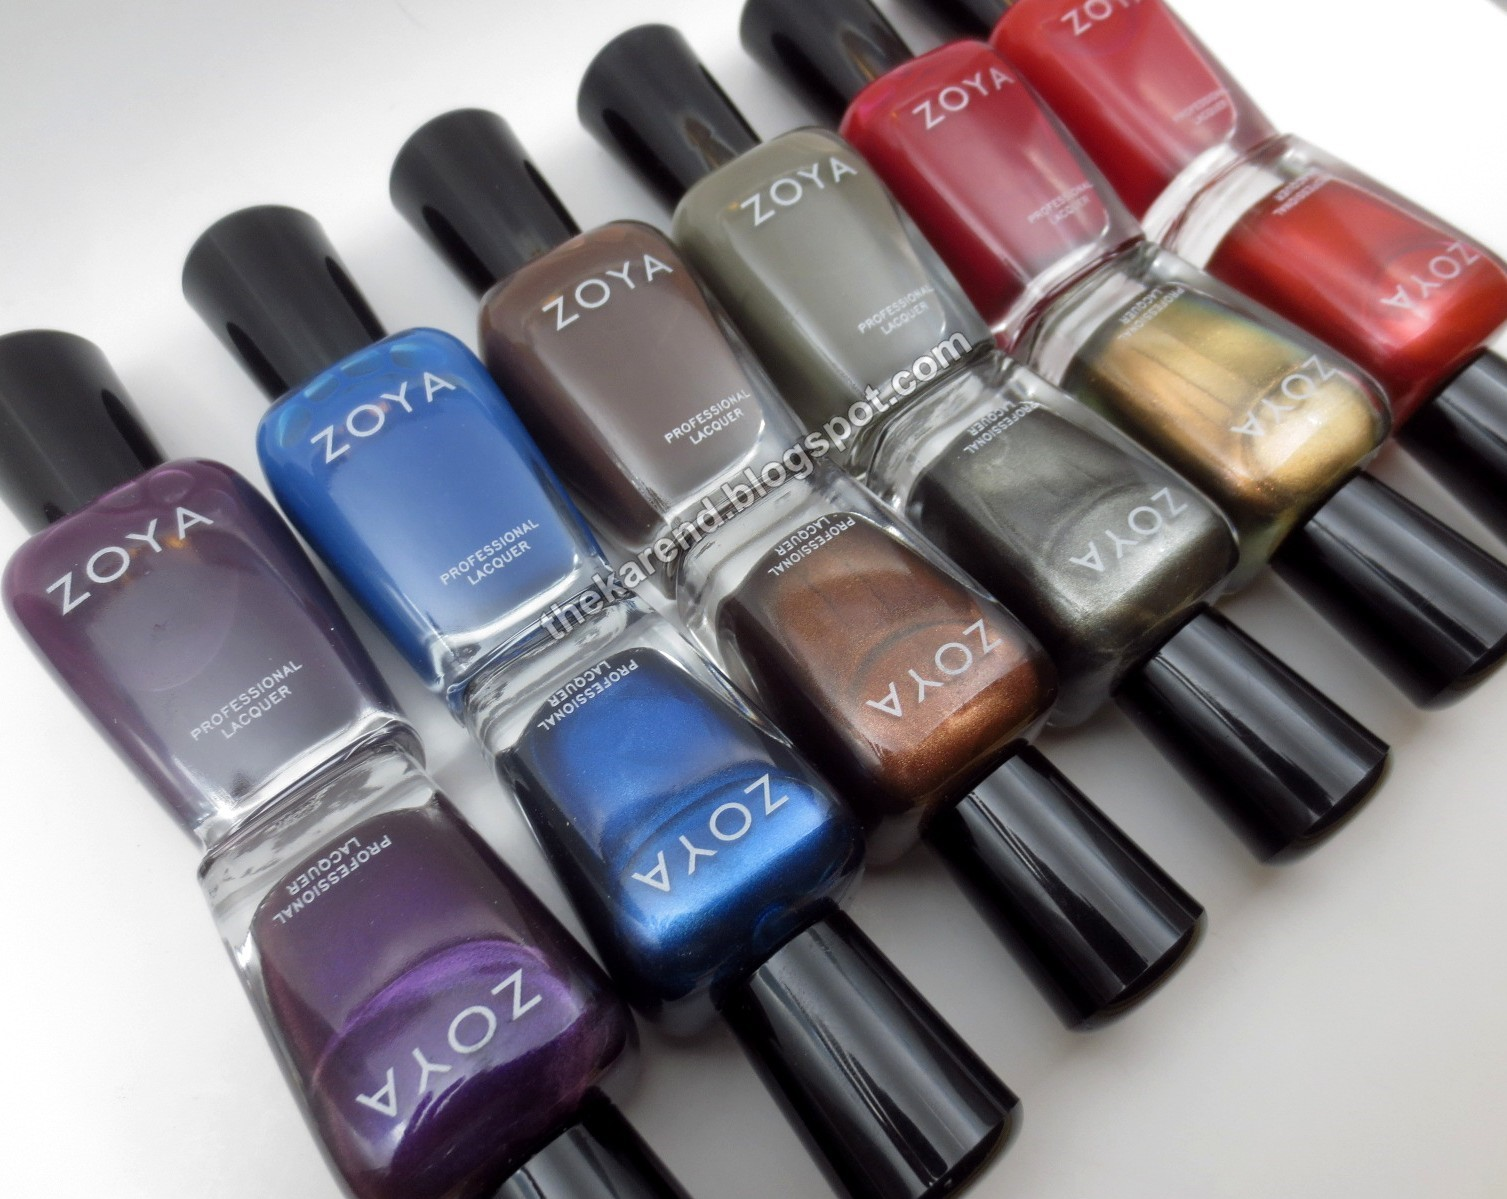 Frazzle and Aniploish: Zoya Fall 2015 Focus and Flair